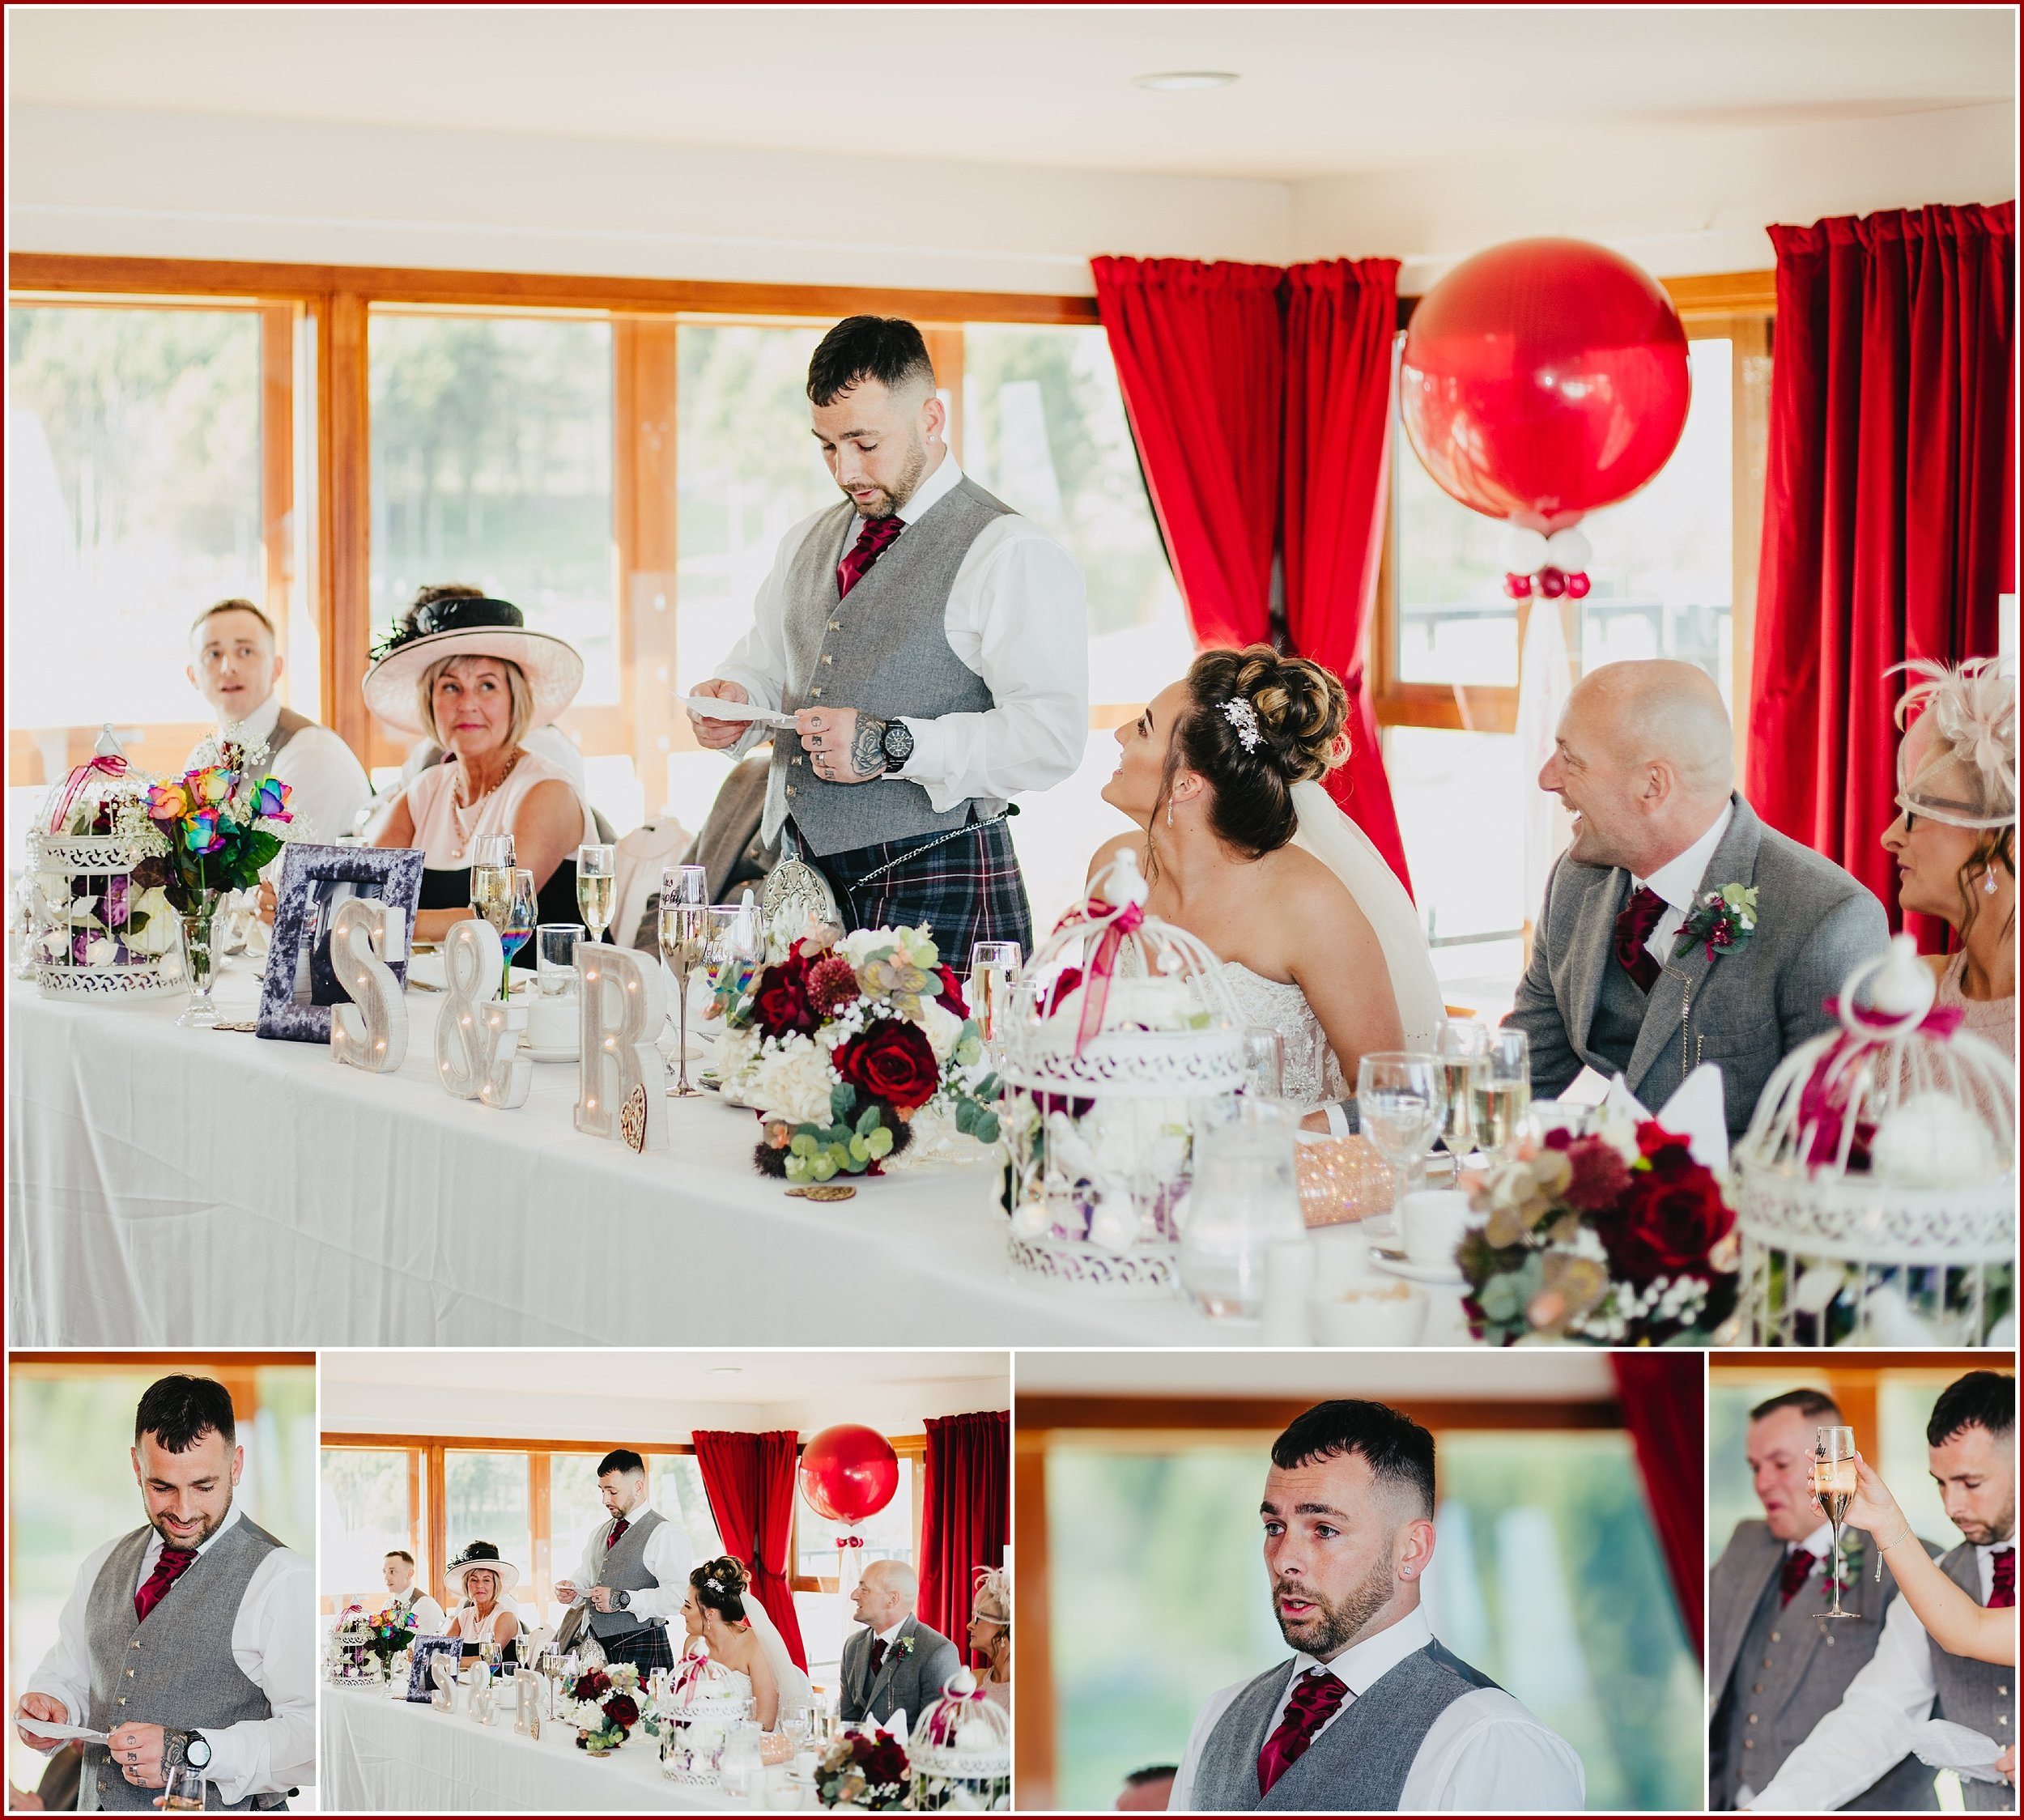 Kirsty_Brown_Wedding_Photography_0106.jpg